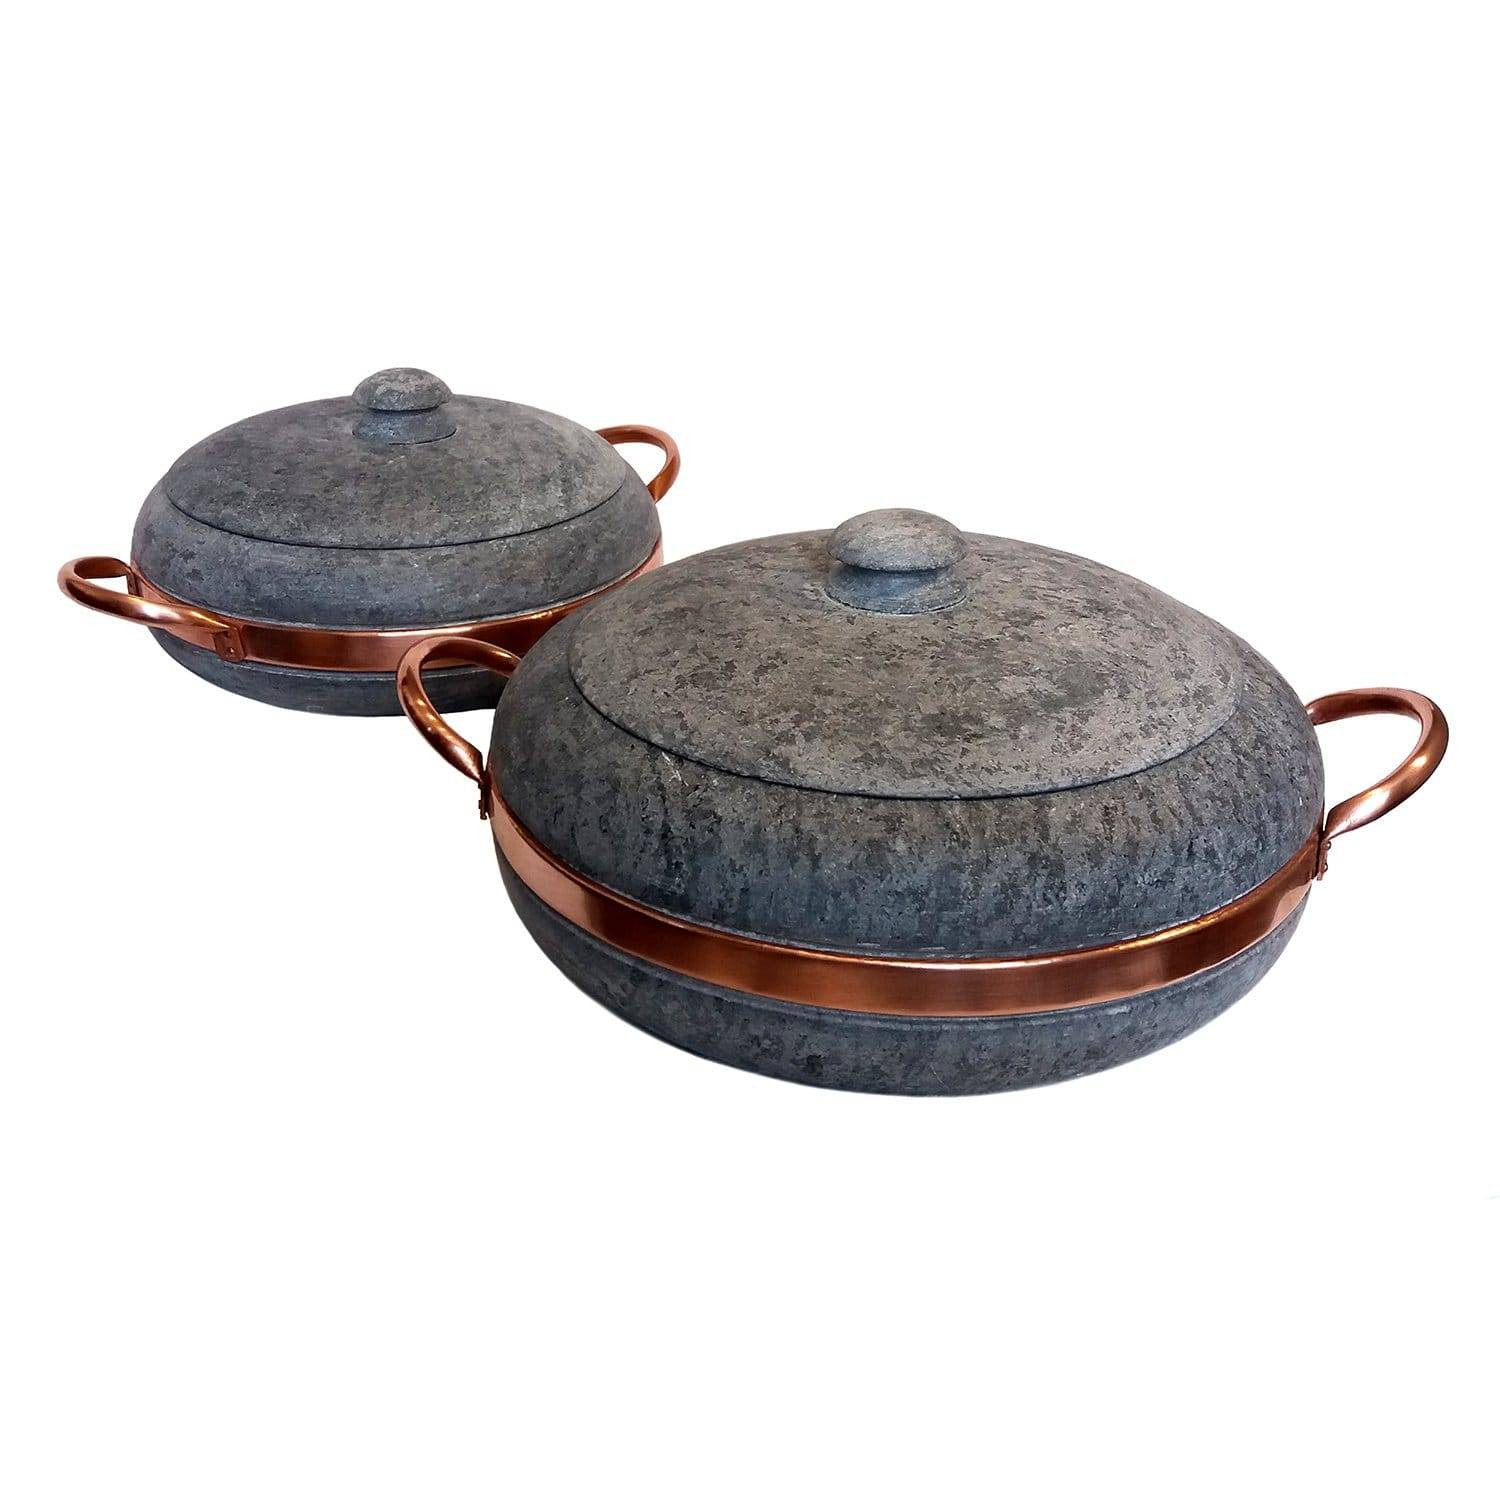 Cookstone Soapstone & Copper Stewing Pan